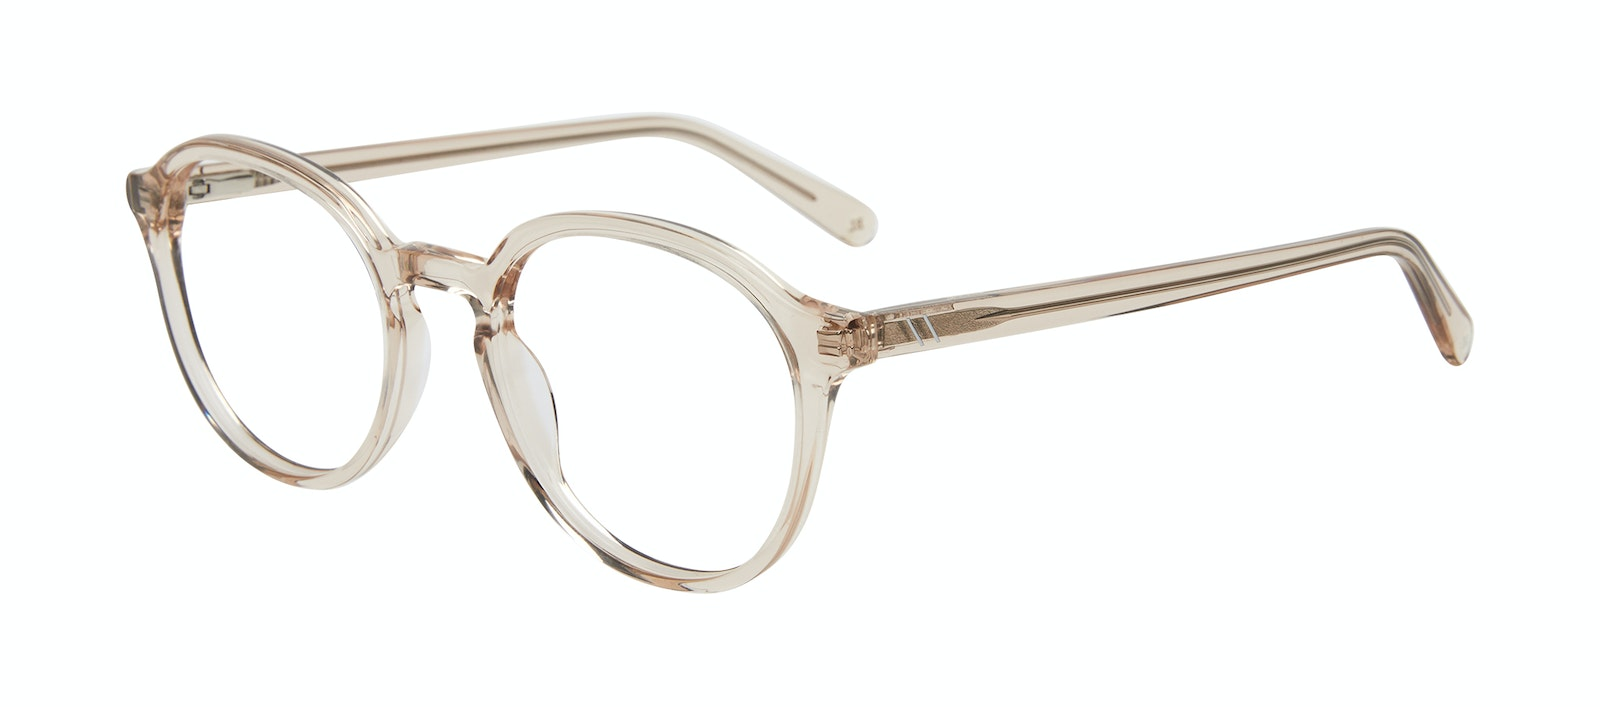 Affordable Fashion Glasses Round Eyeglasses Men Ansel Golden Tilt